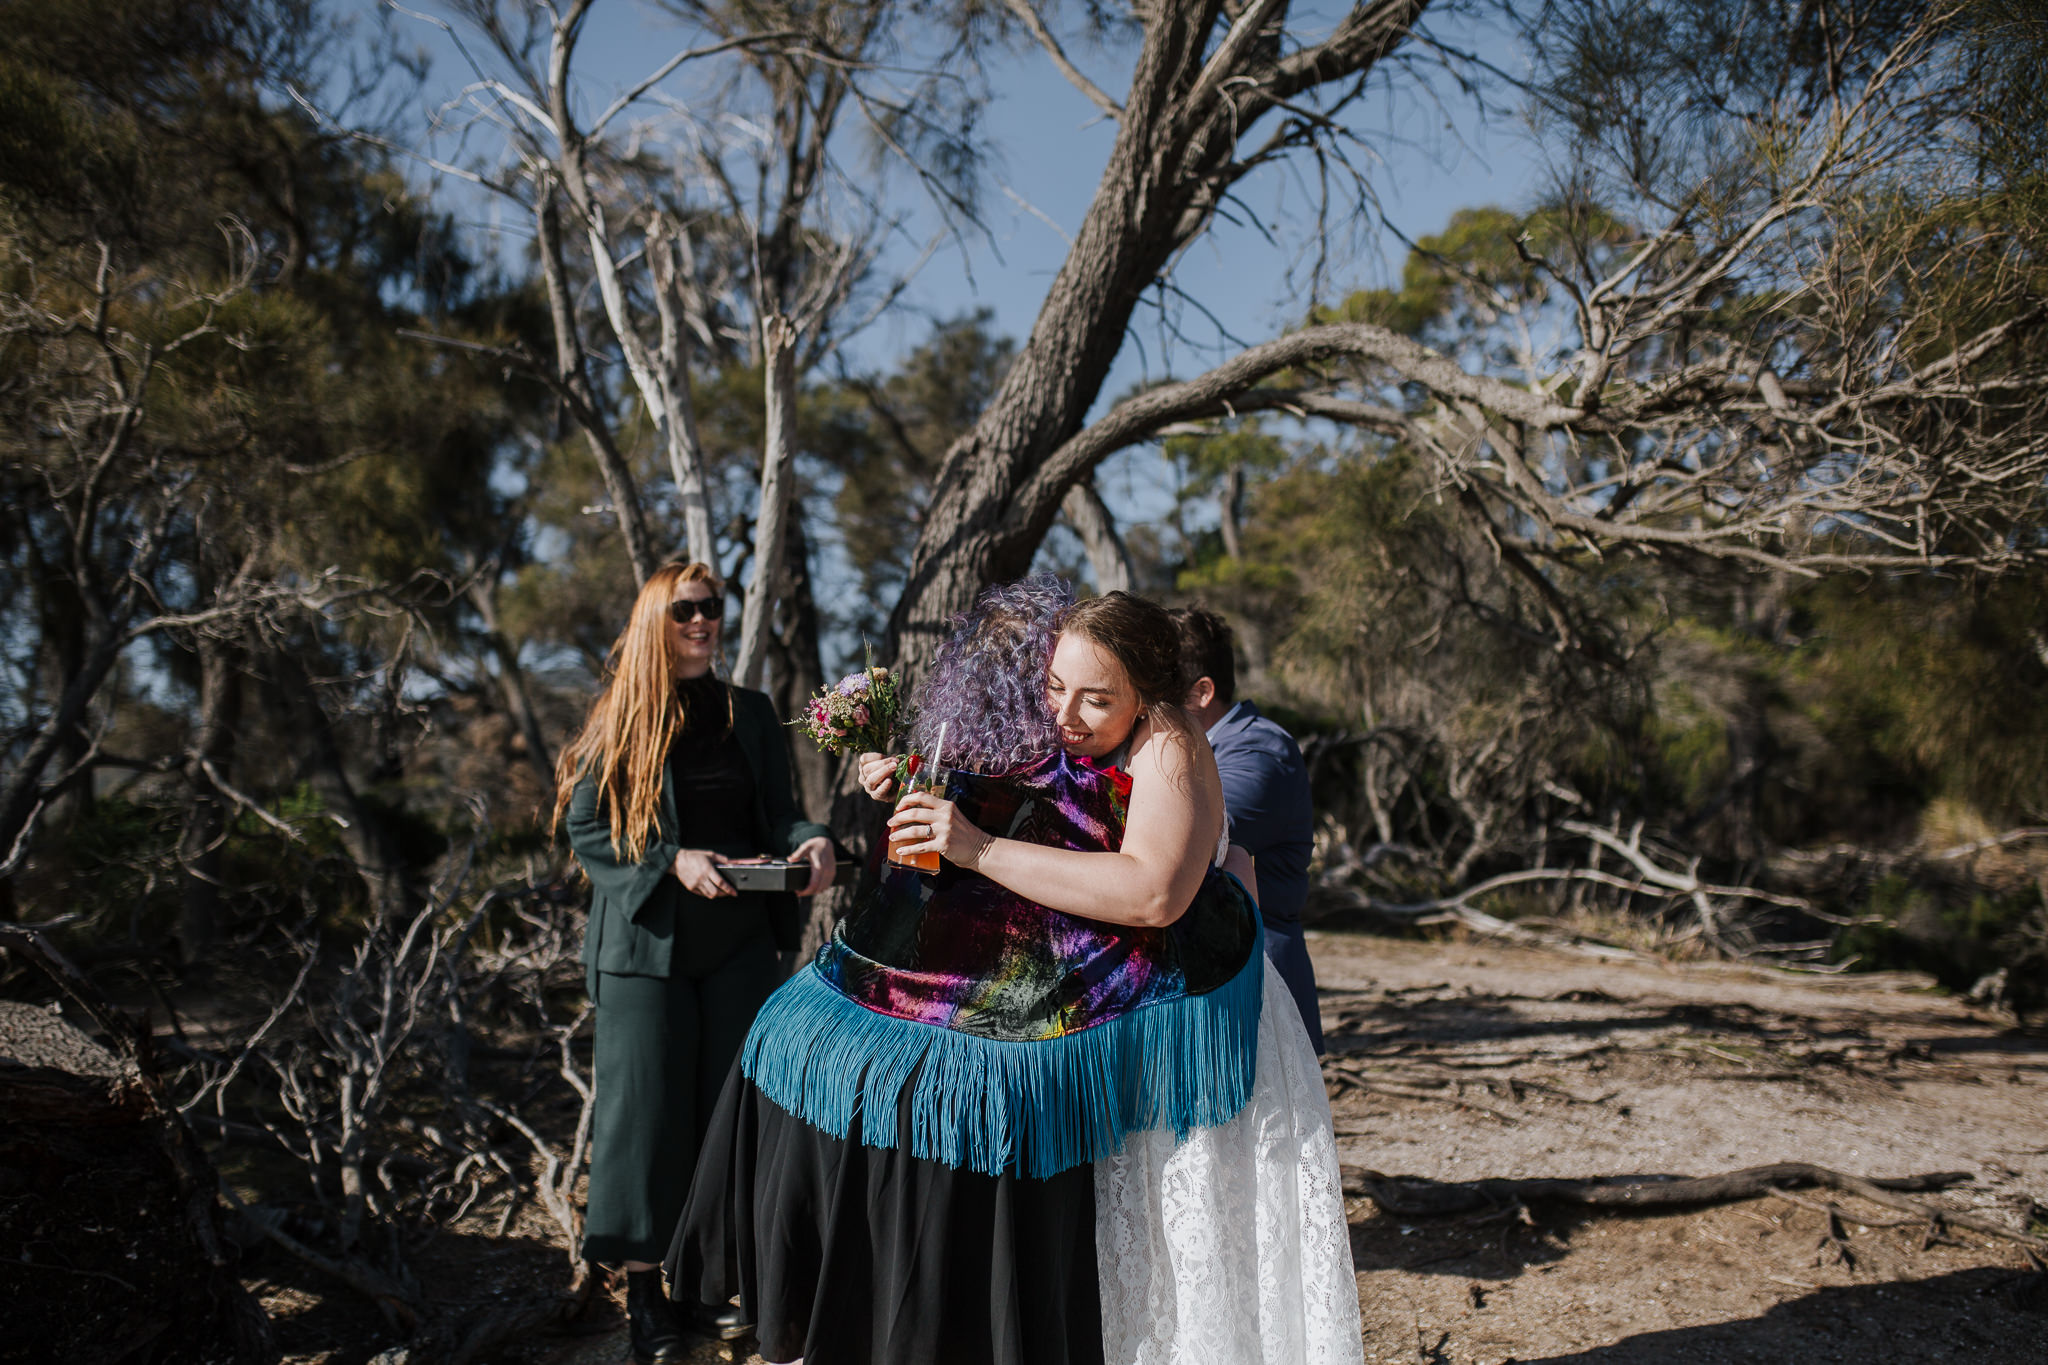 two people hug in the foreground, one is wearing a rainbow cape with bright blue tassels and the other is wearing a white dress and holding a celebratory drink, two others people are waiting close by, they are all in a national park and surrounded by gnarly tree branches